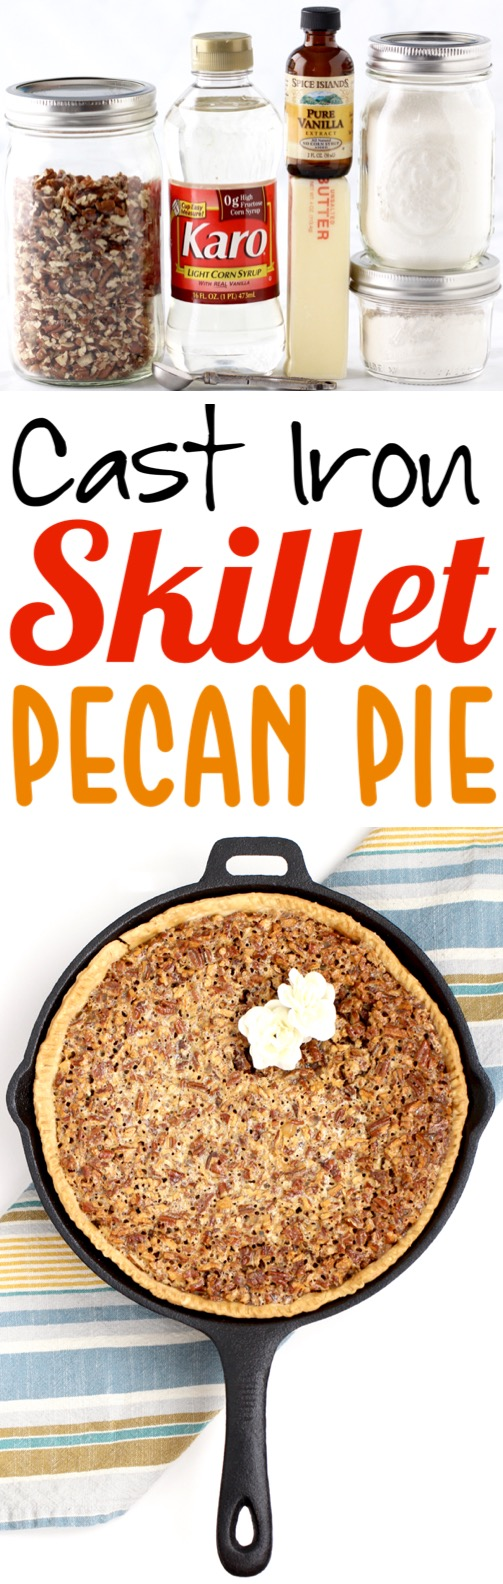 Pecan Pie Recipe | This Easy Southern Cast Iron Skillet Pecan Pie with Corn Syrup is simply the Best... simple to make and SO delicious